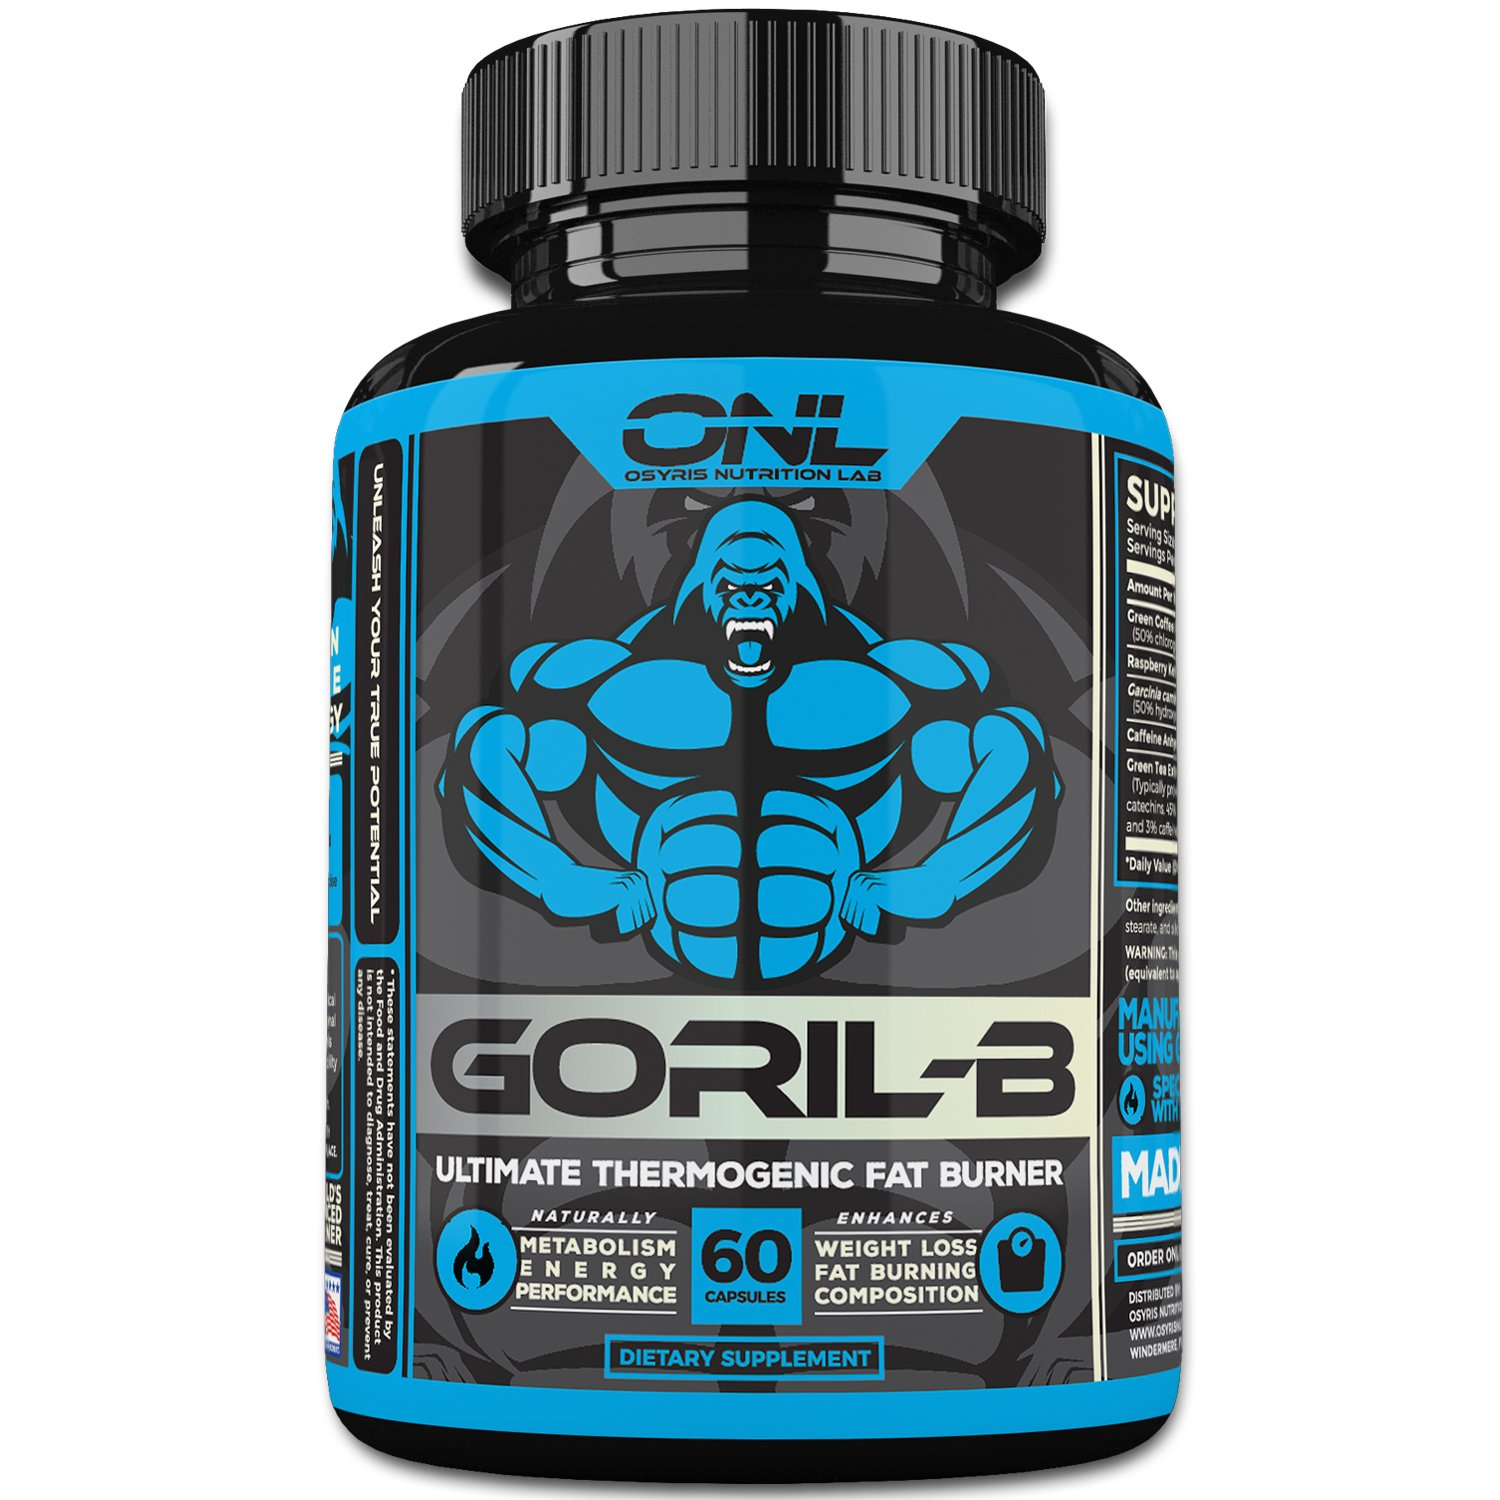 GORIL-B Thermogenic Fat Burner Pills (60 Capsules) Weight Loss Formula for Men and Women - Boost Metabolism, Increase Energy, Suppress Appetite - Diet Supplement Promotes Healthy Weight Loss by Osyris Nutrition Lab